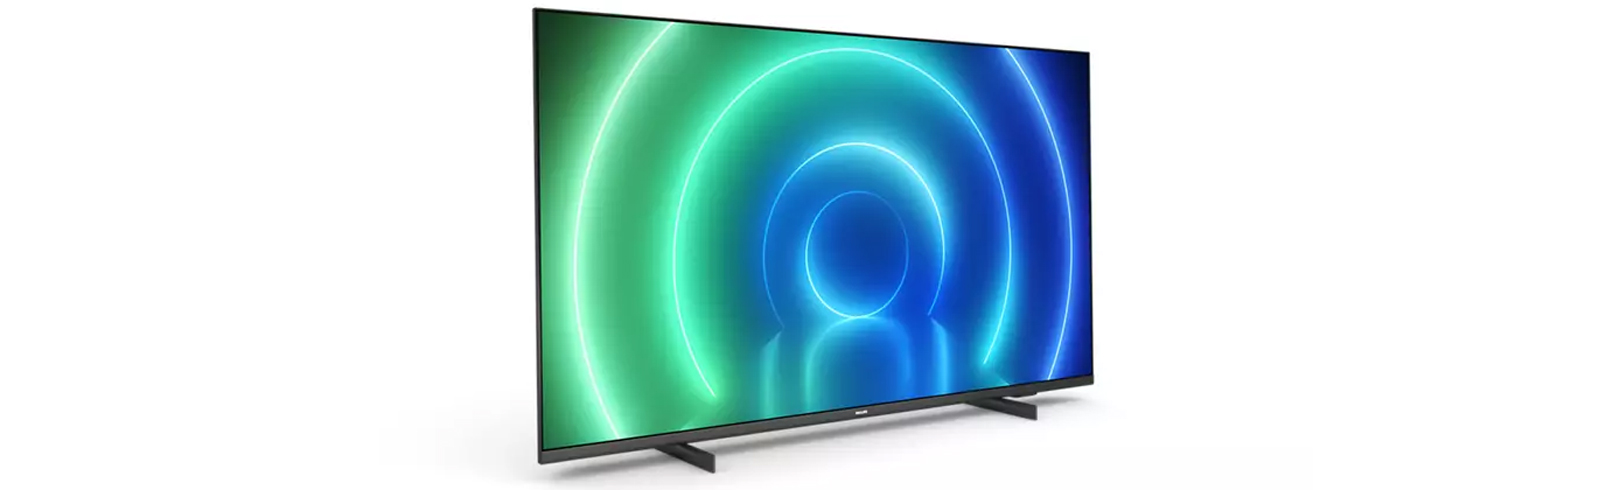 Philips PUS7506 / PUS7556 4K TVs with Saphi are launched - specifications and features